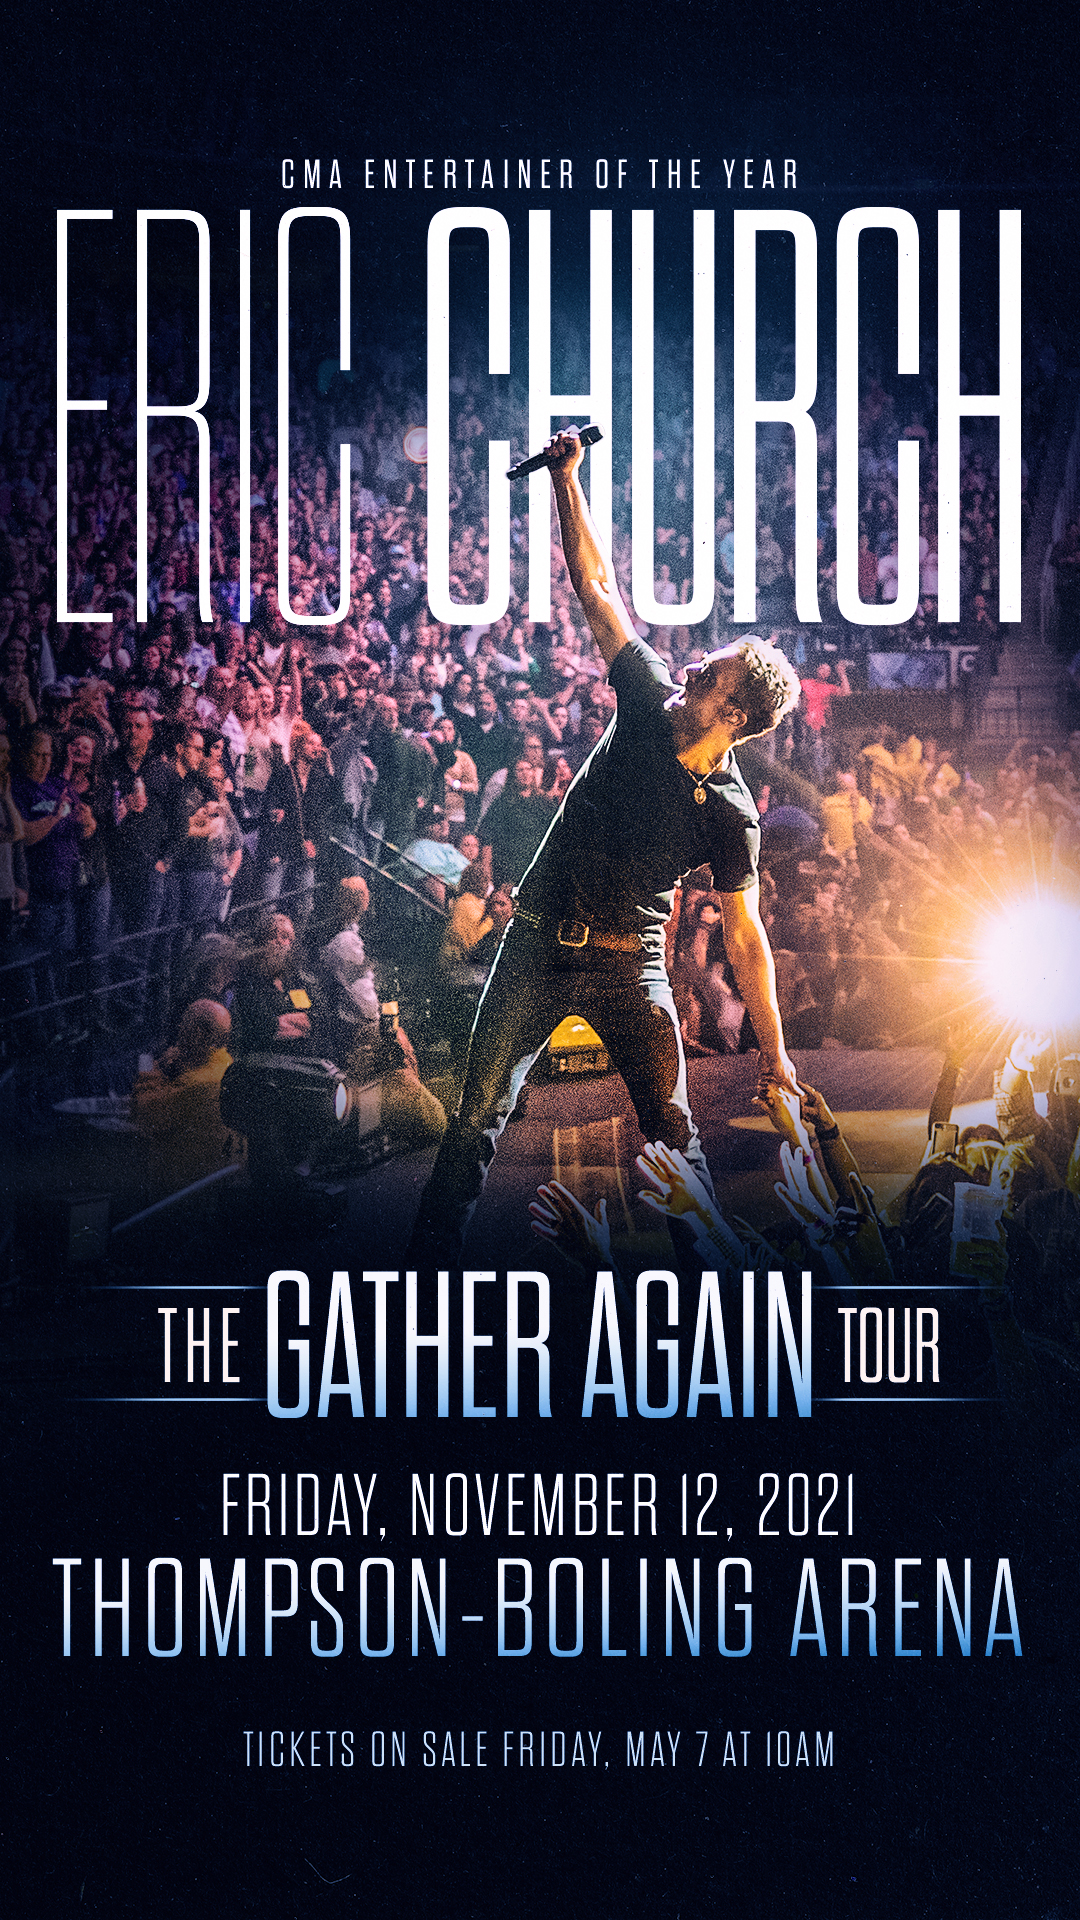 Nov 12th, Eric Church @ Thompson Boling Arena